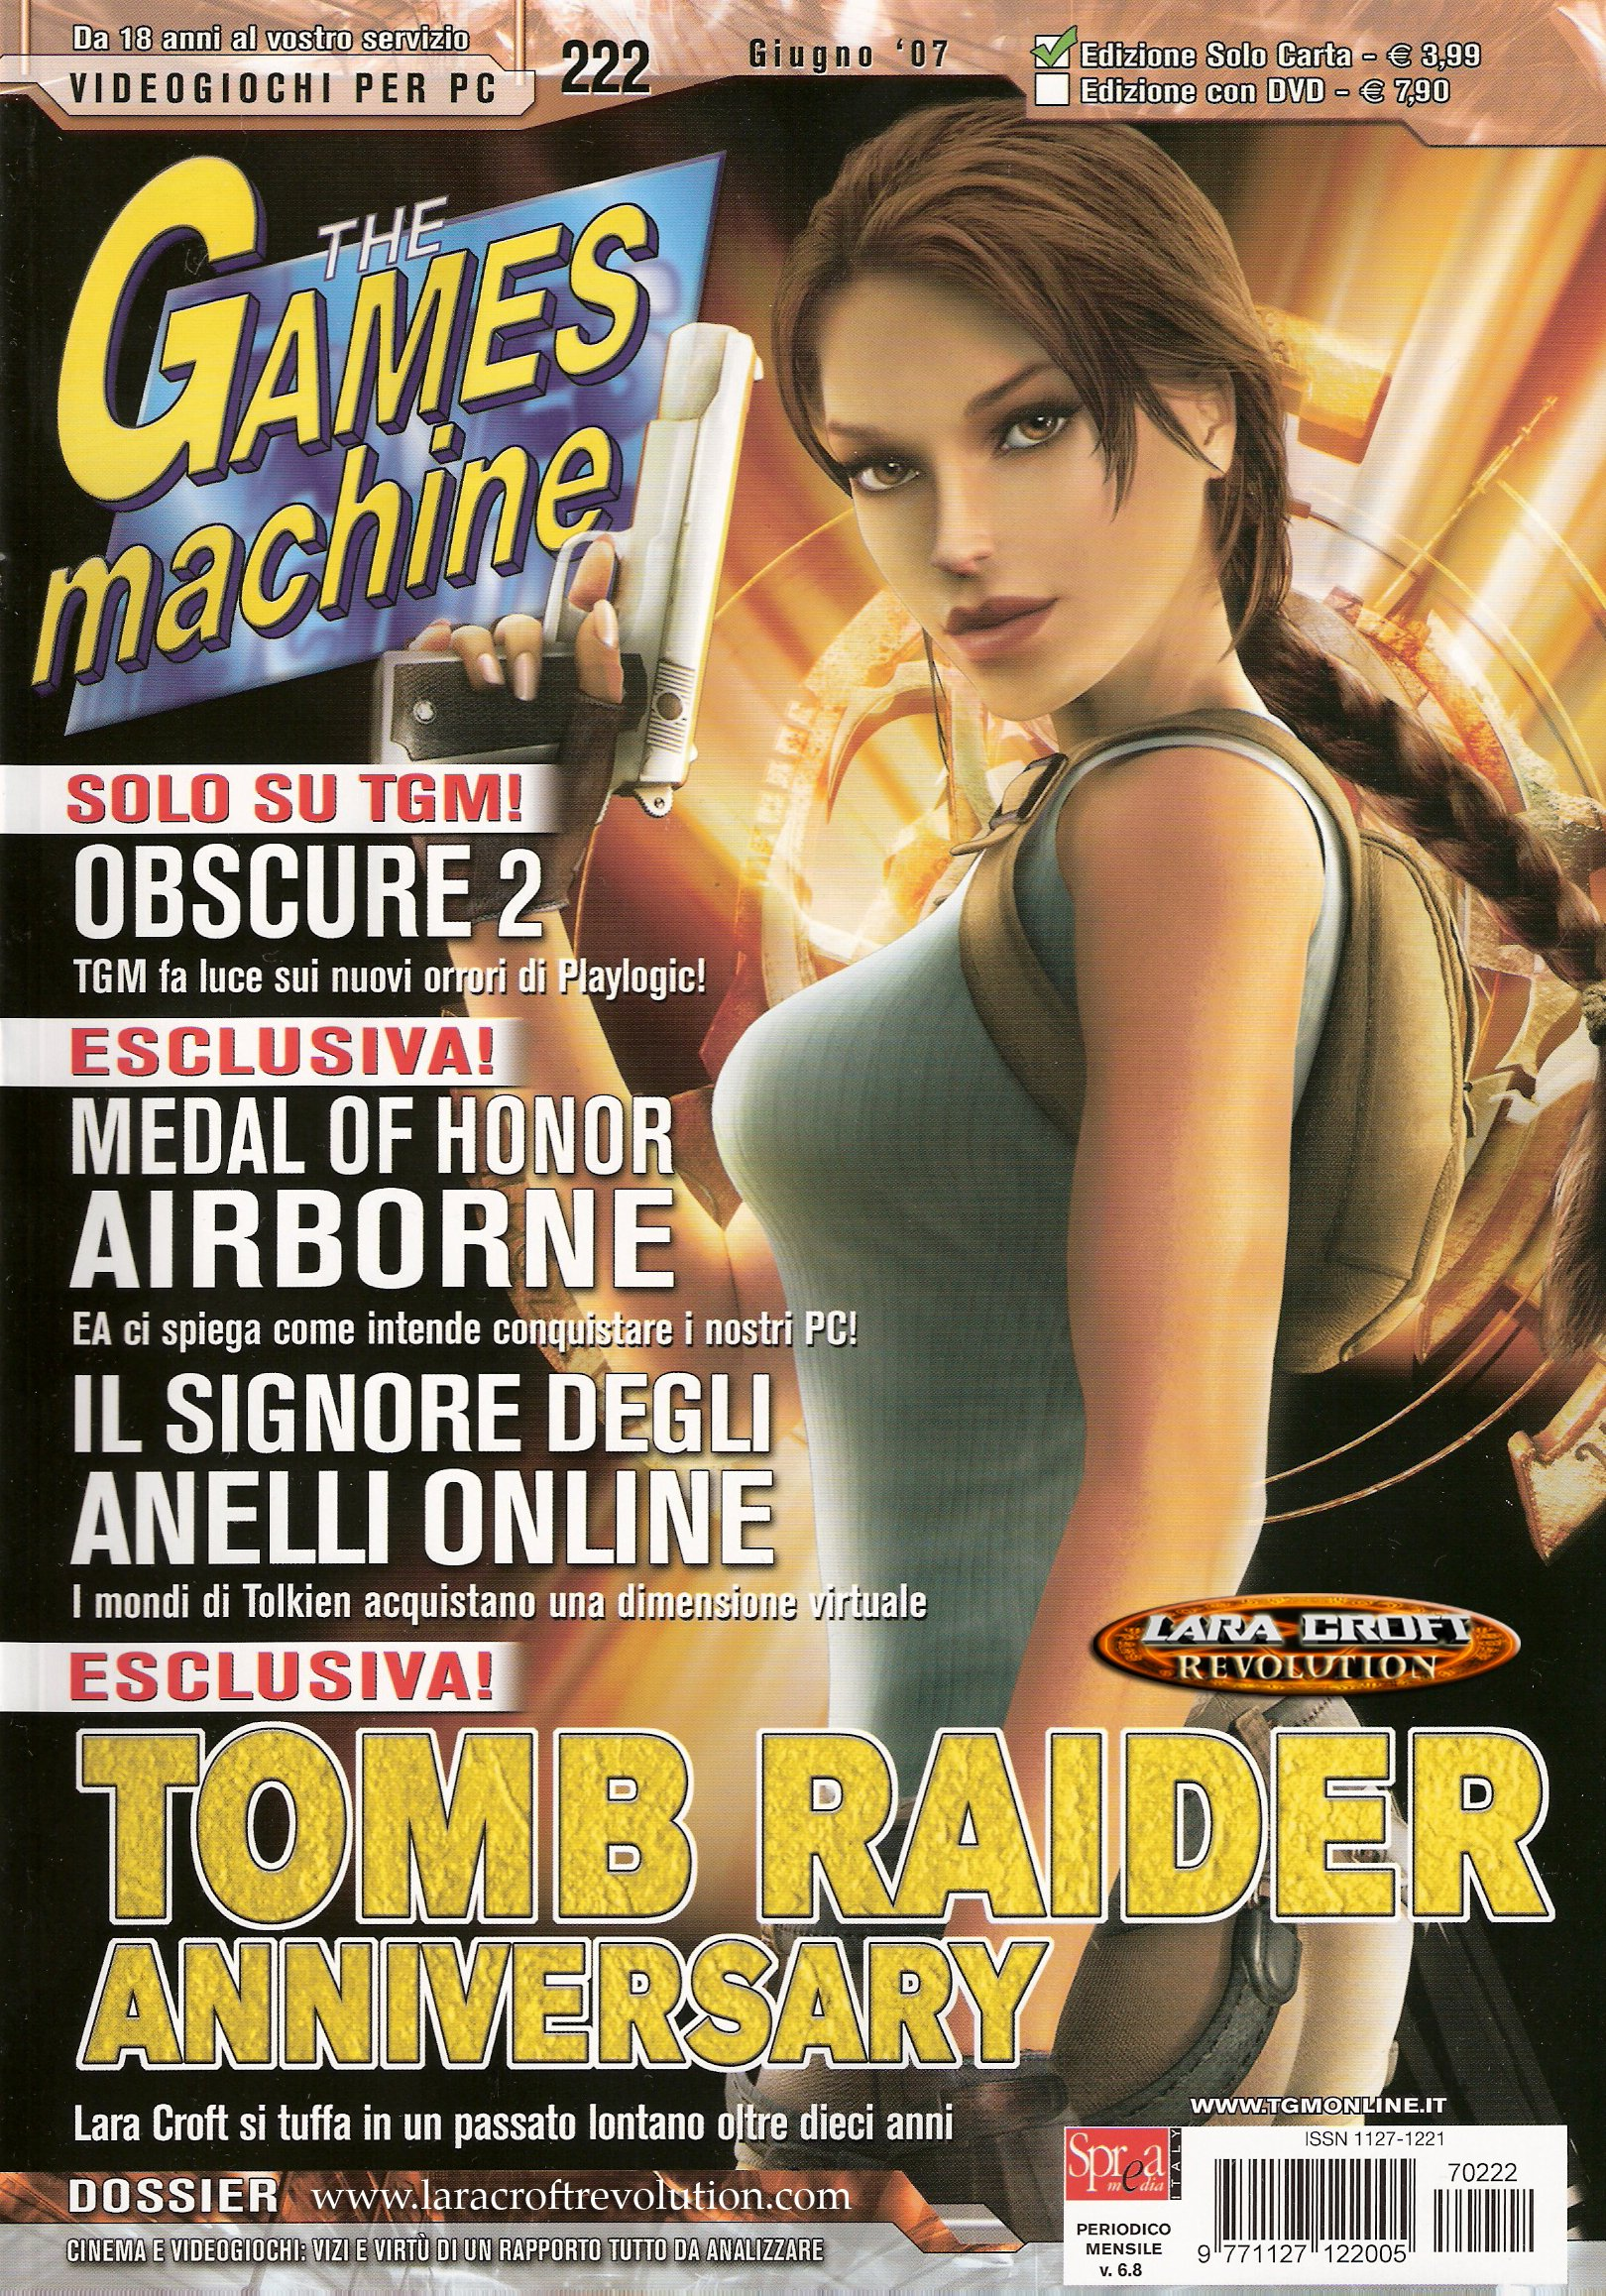 The Games Machine Issue 222 (June 2007)